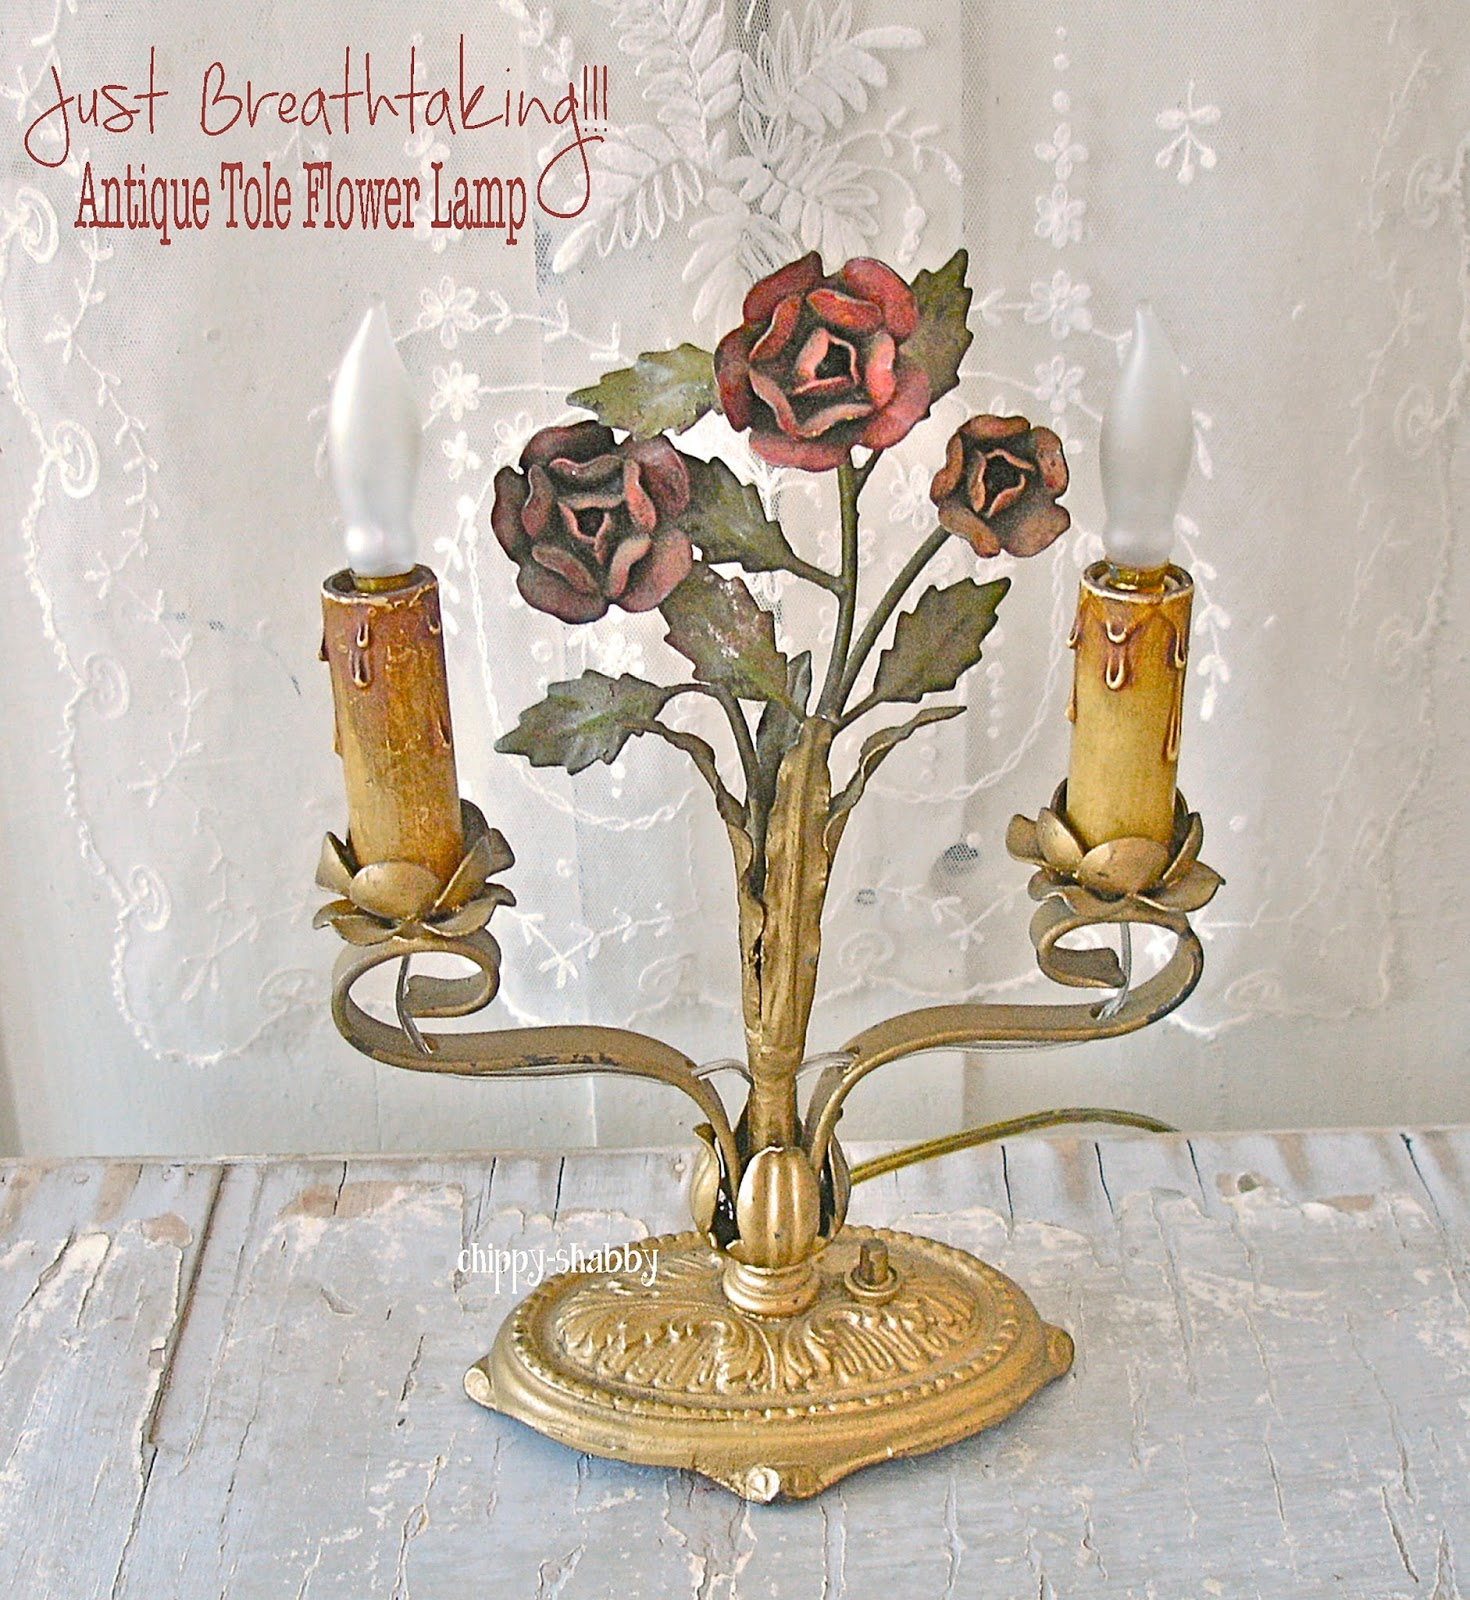 Chippy shabby omg antique vintage rose flower tole lamp antique vintage rose flower tole lamp arubaitofo Image collections